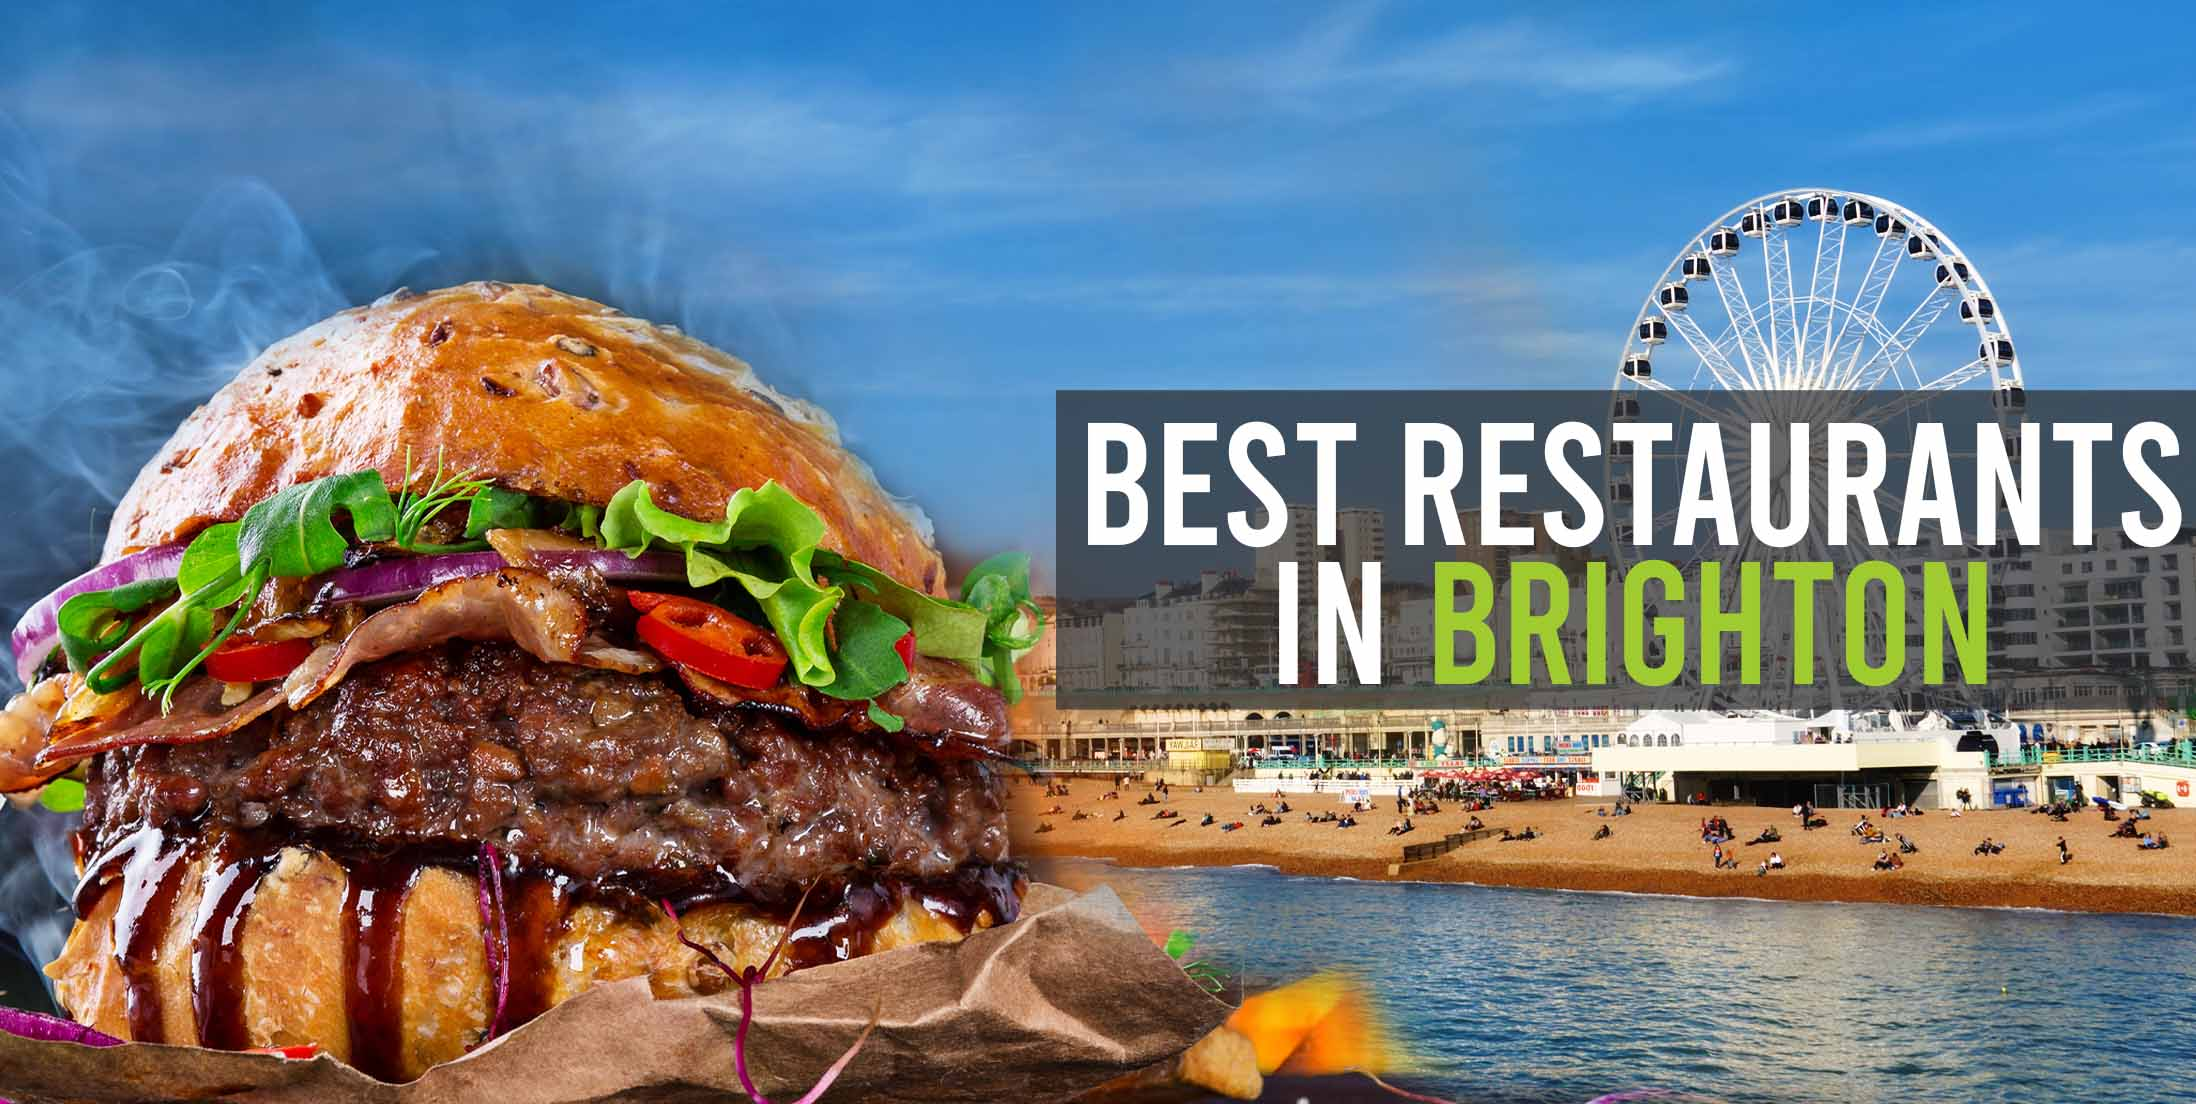 Best Restaurants in Brighton